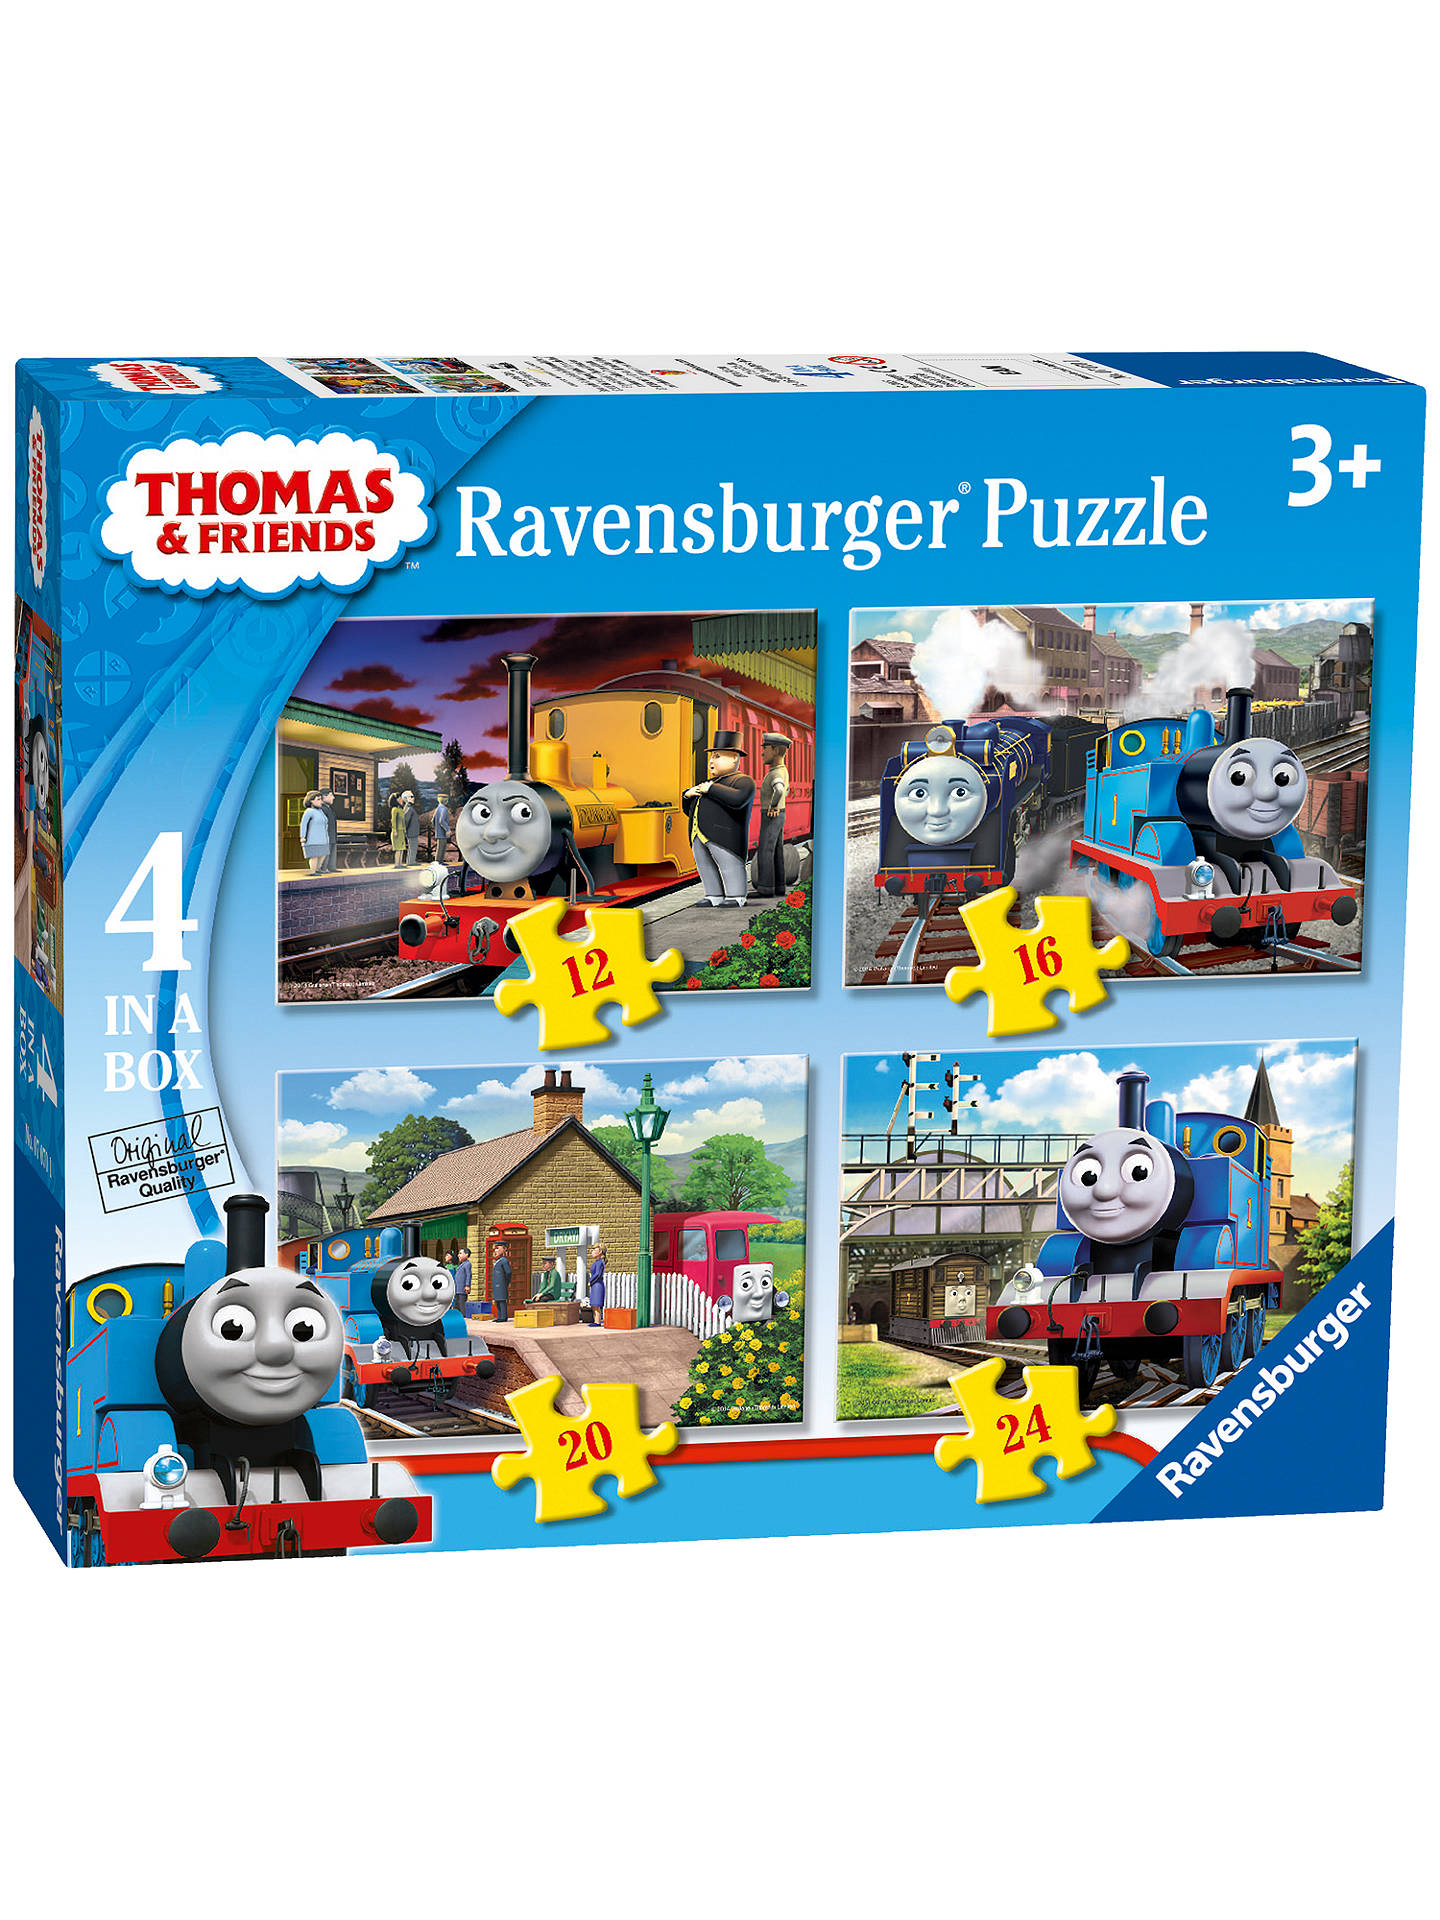 Ravensburger Thomas Amp Friends Jigsaw Puzzles Box Of 4 At